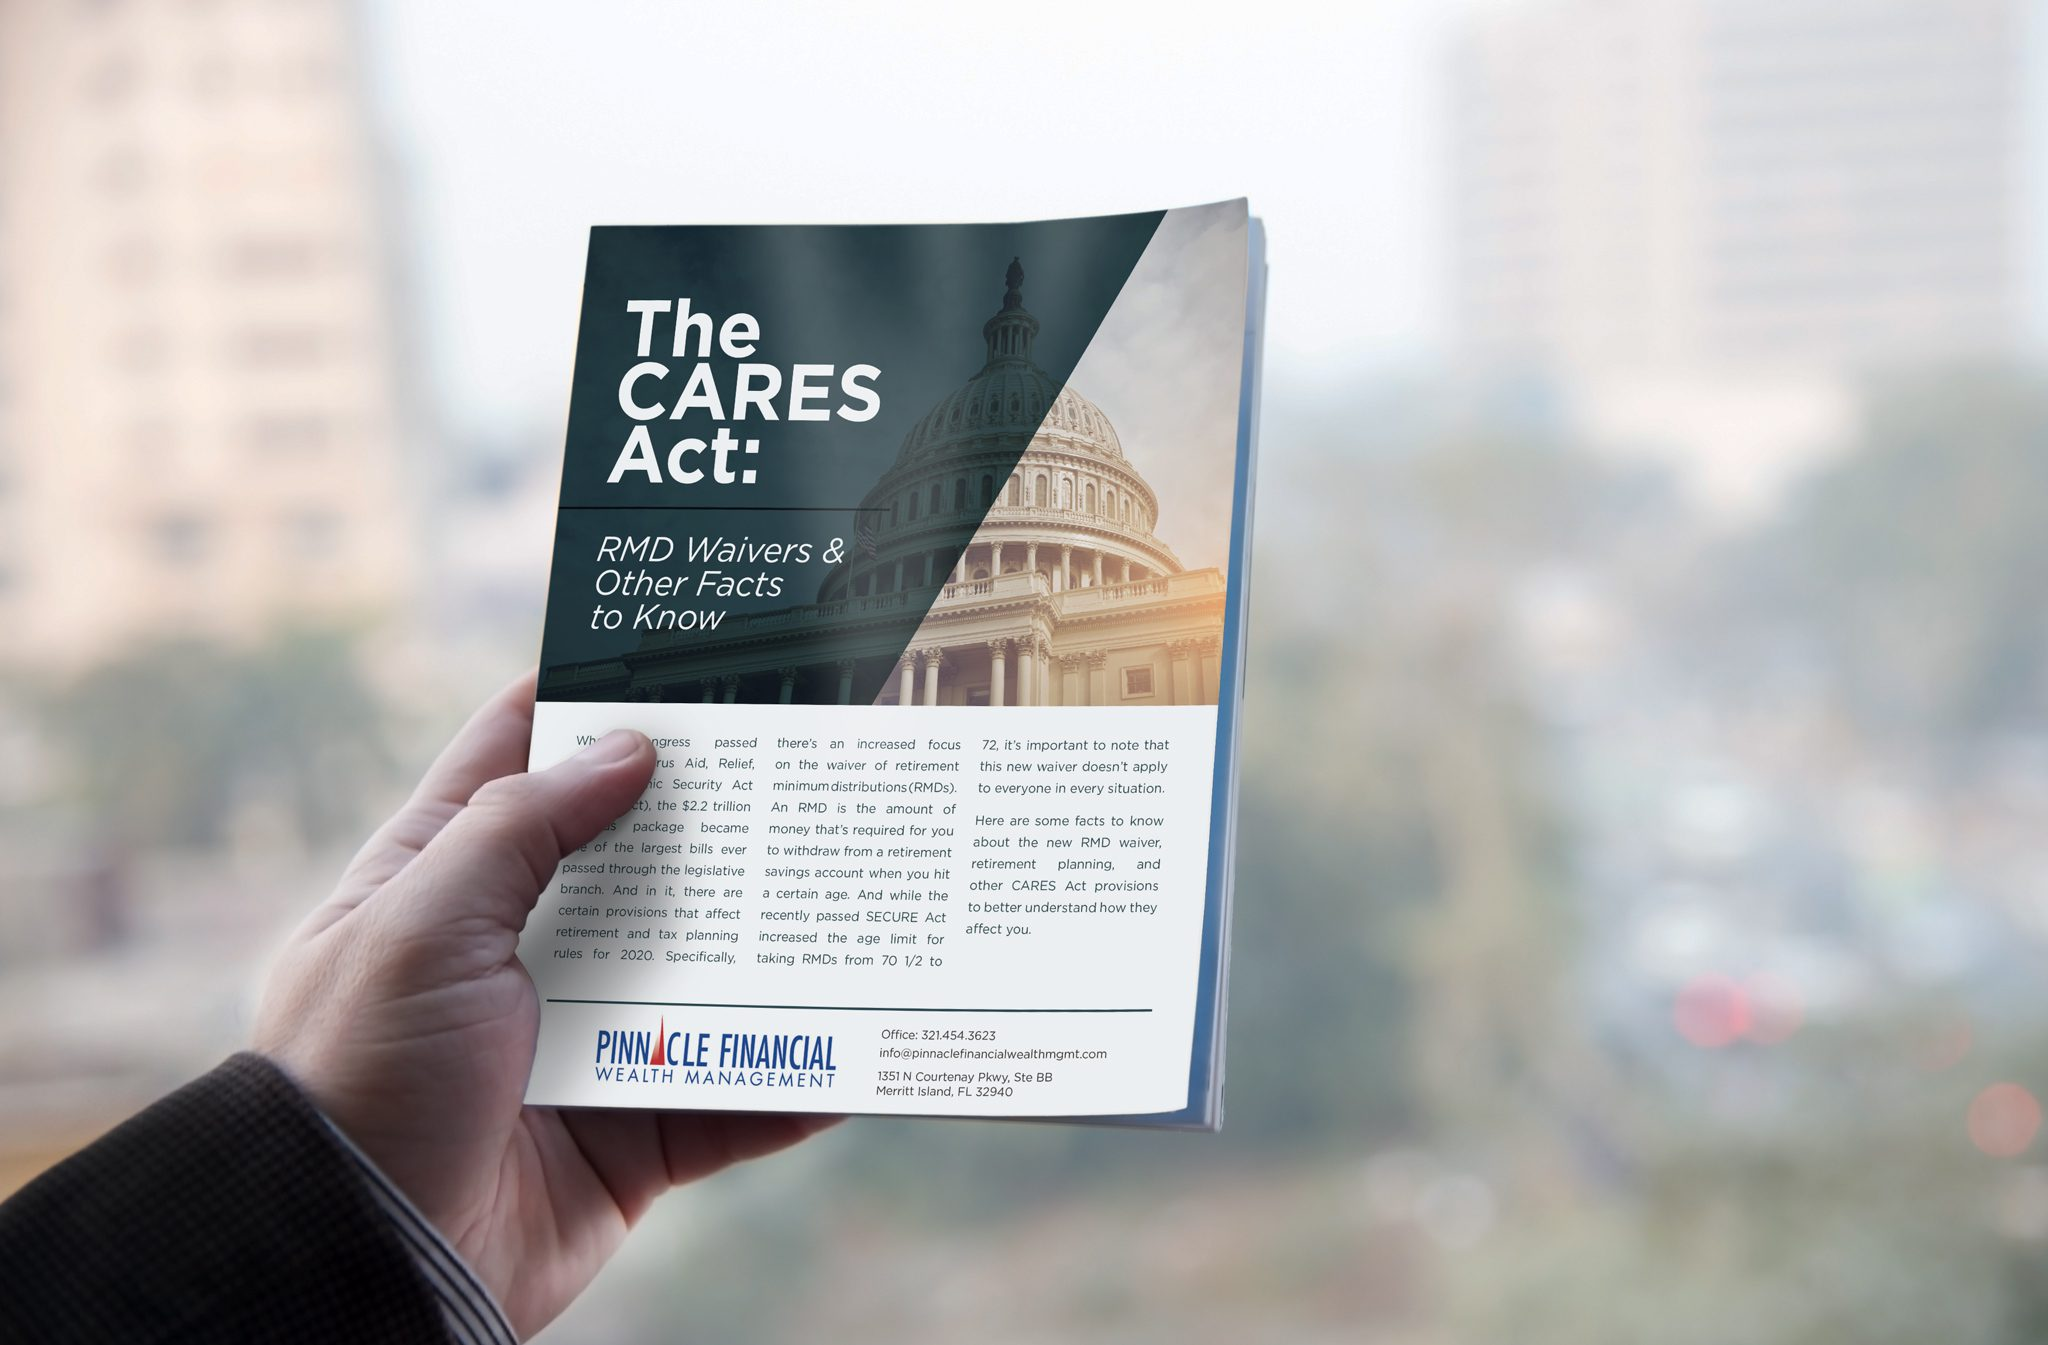 The CARES Act: RMD Waivers & Other Facts to Know